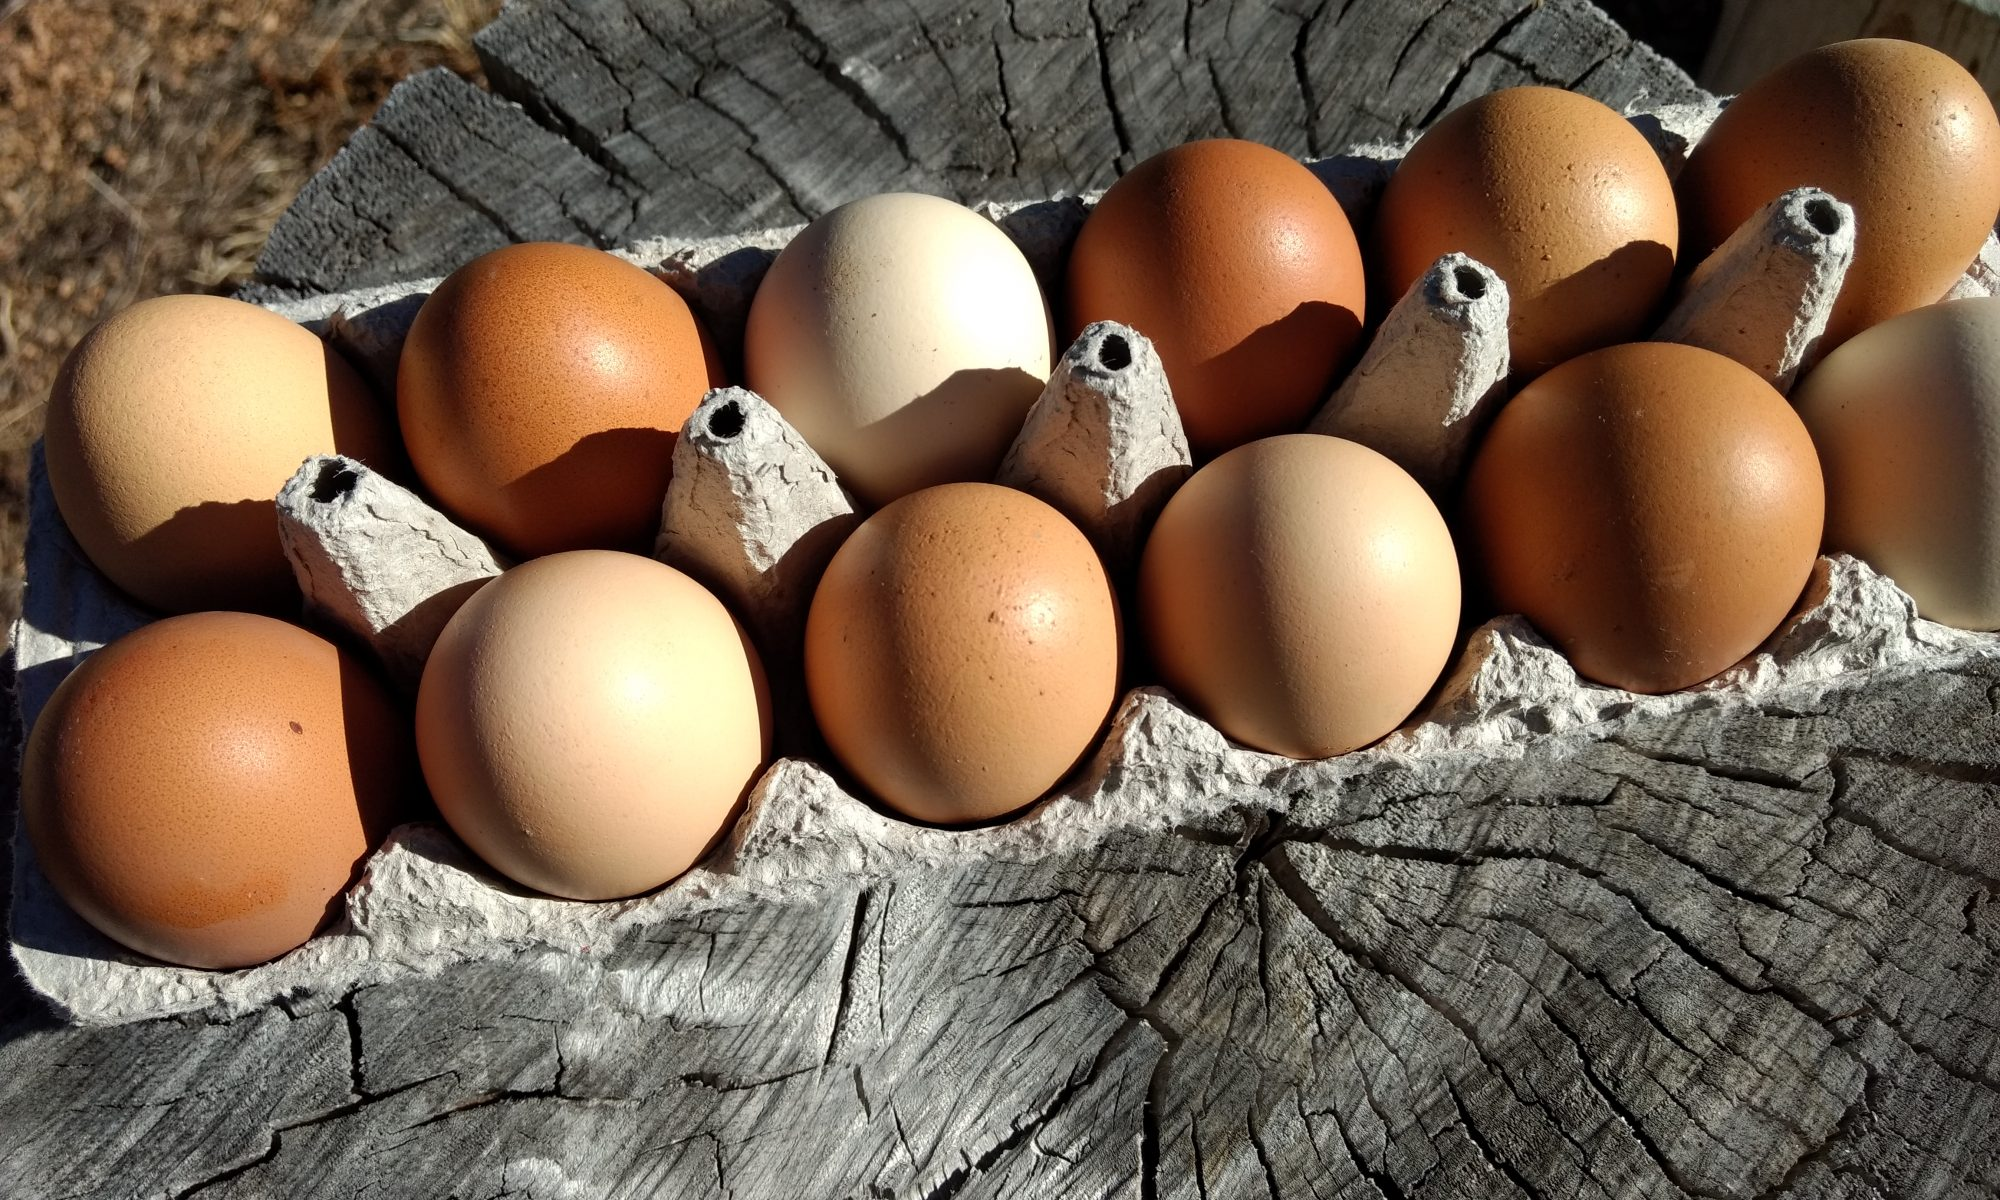 [Pastured Eggs from A Little Farm]